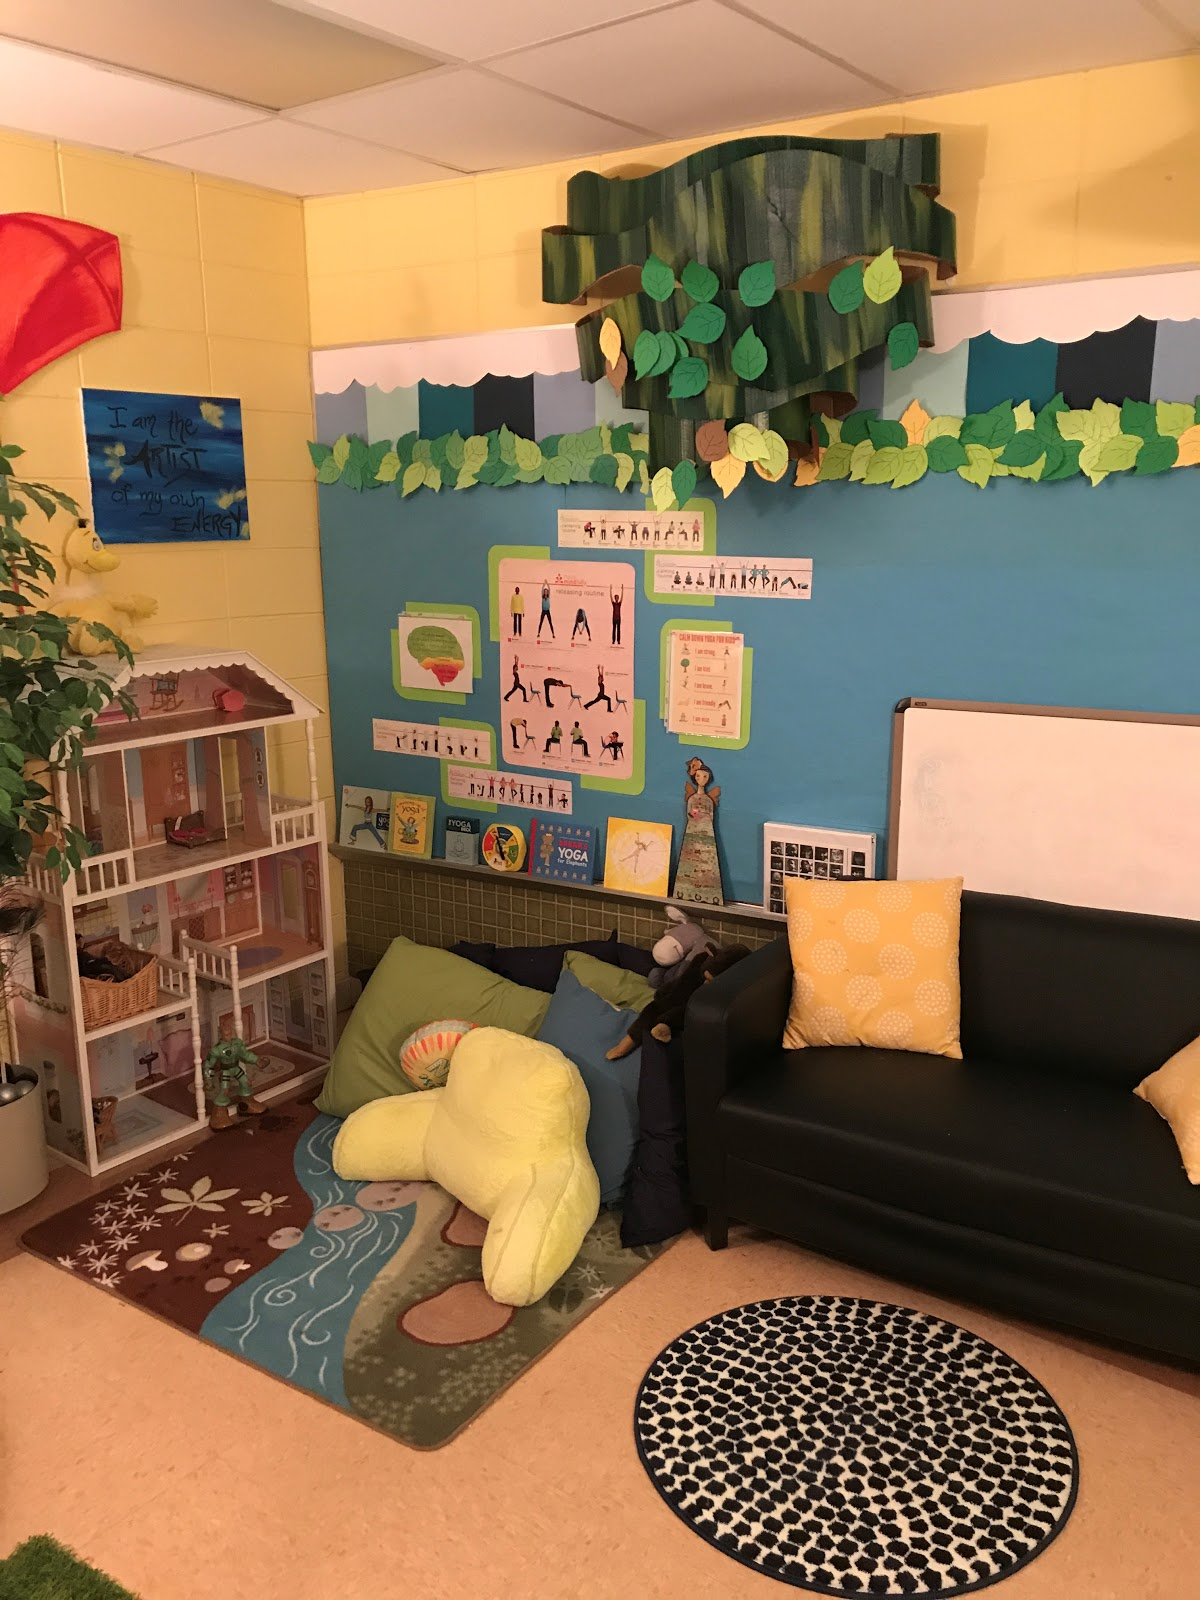 Example of a Mindfulness Space